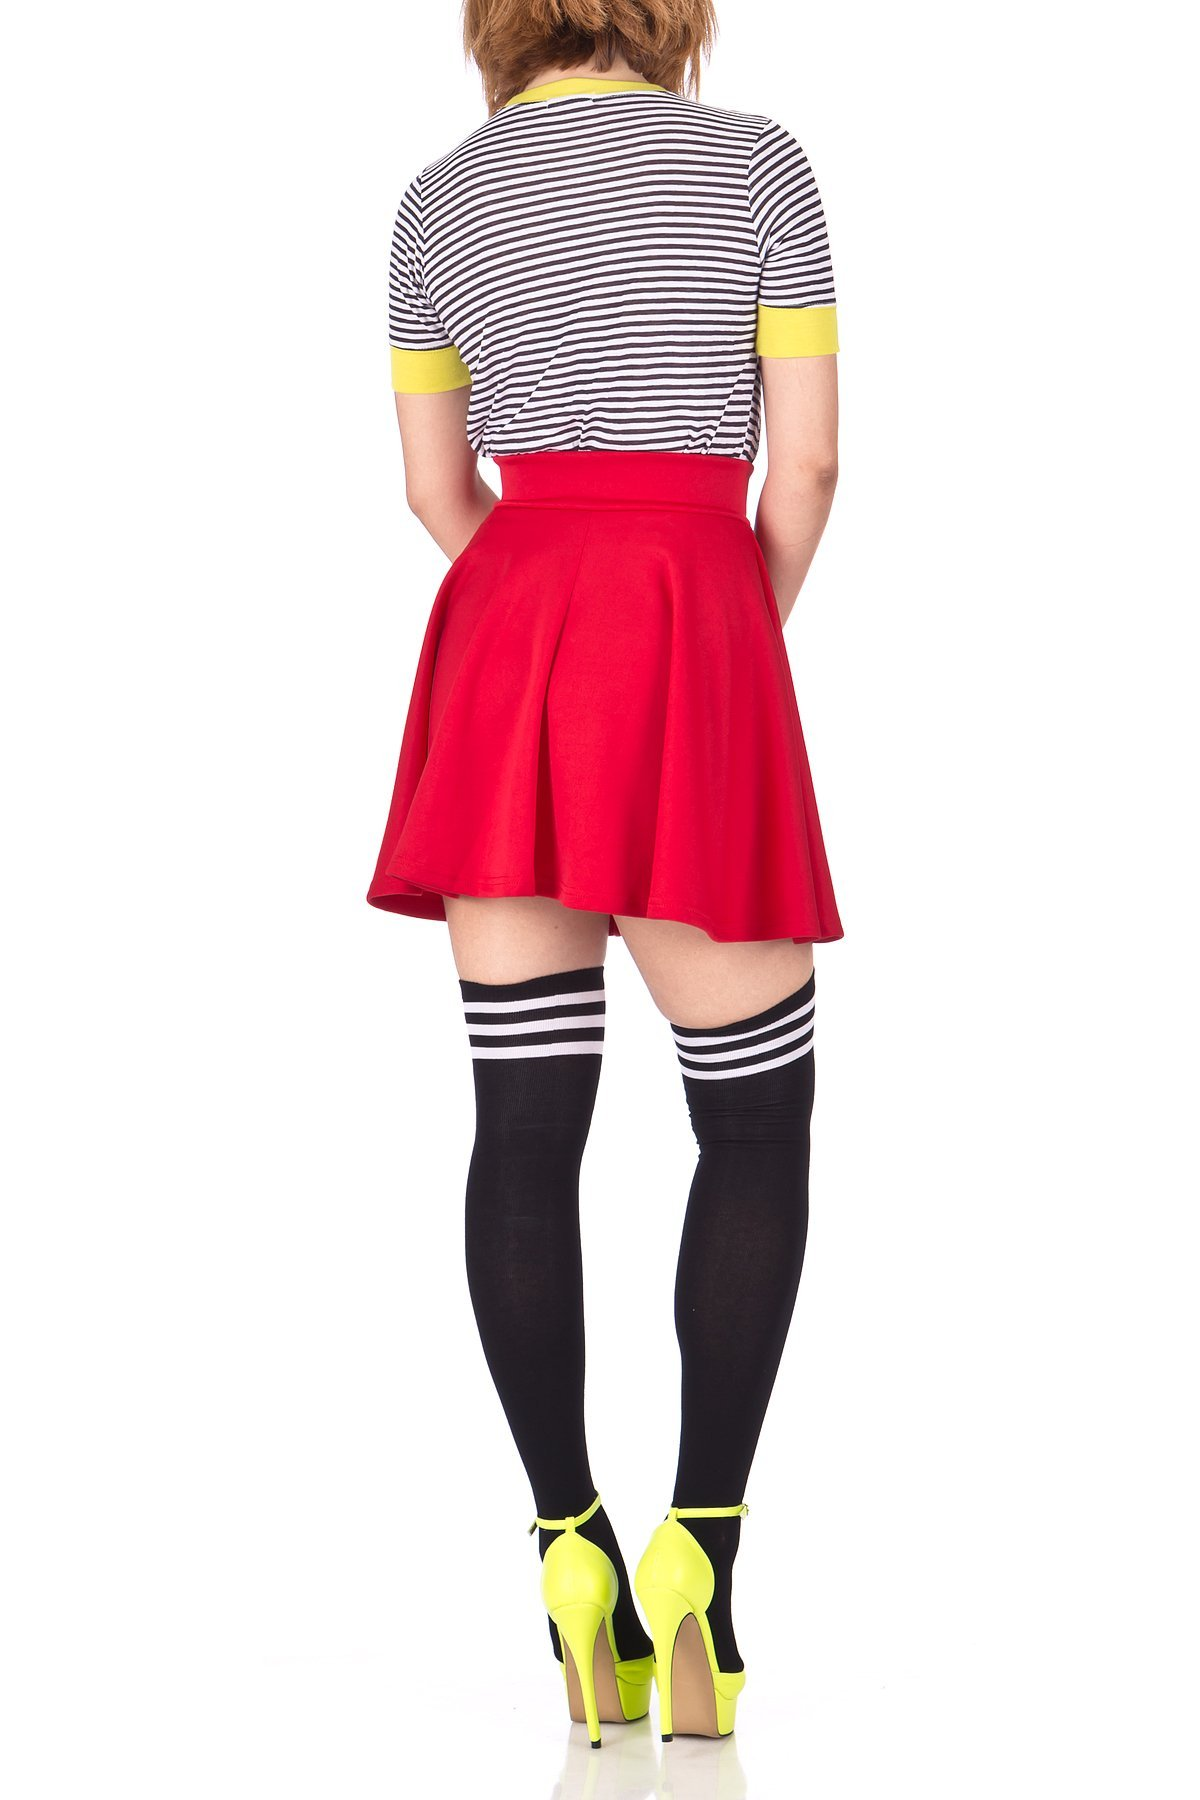 Fancy Retro High Waist A line Flowing Full Flared Swing Circle Skater Short Mini Skirt Red 05